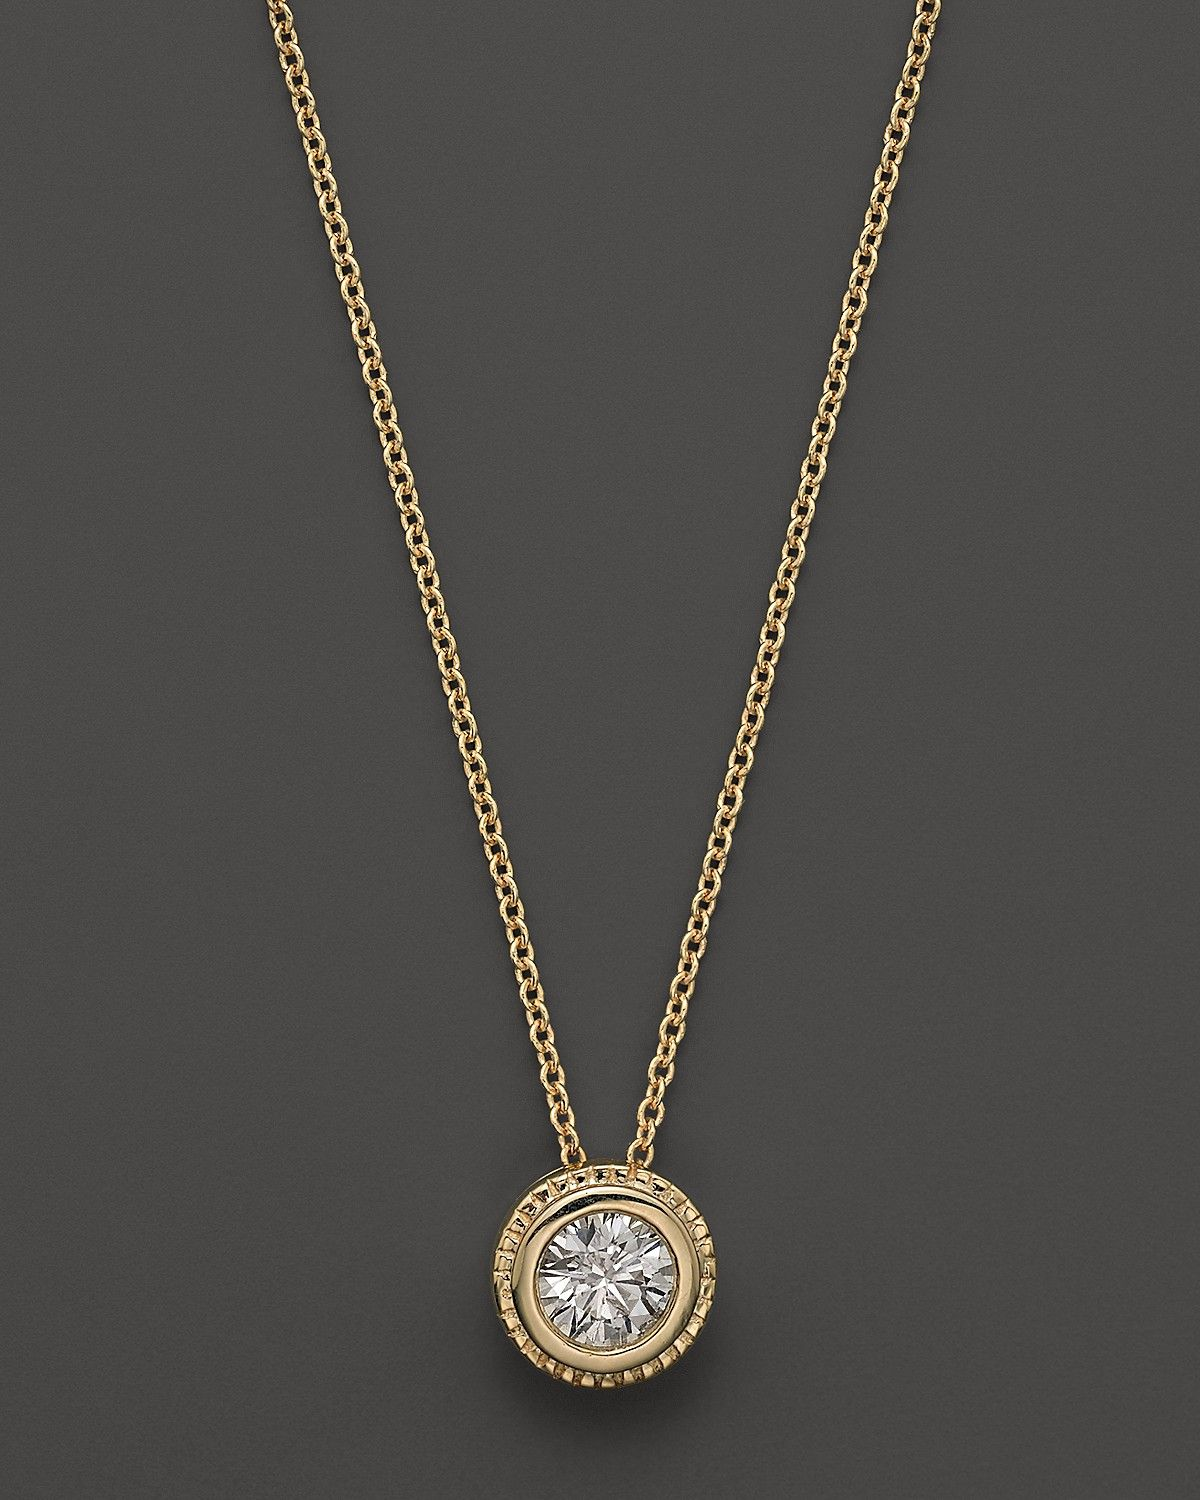 Bezel set diamond solitaire pendant necklace in 14k yellow gold 40 bezel set diamond solitaire pendant necklace in 14k yellow gold 40 ct tw bloomingdales aloadofball